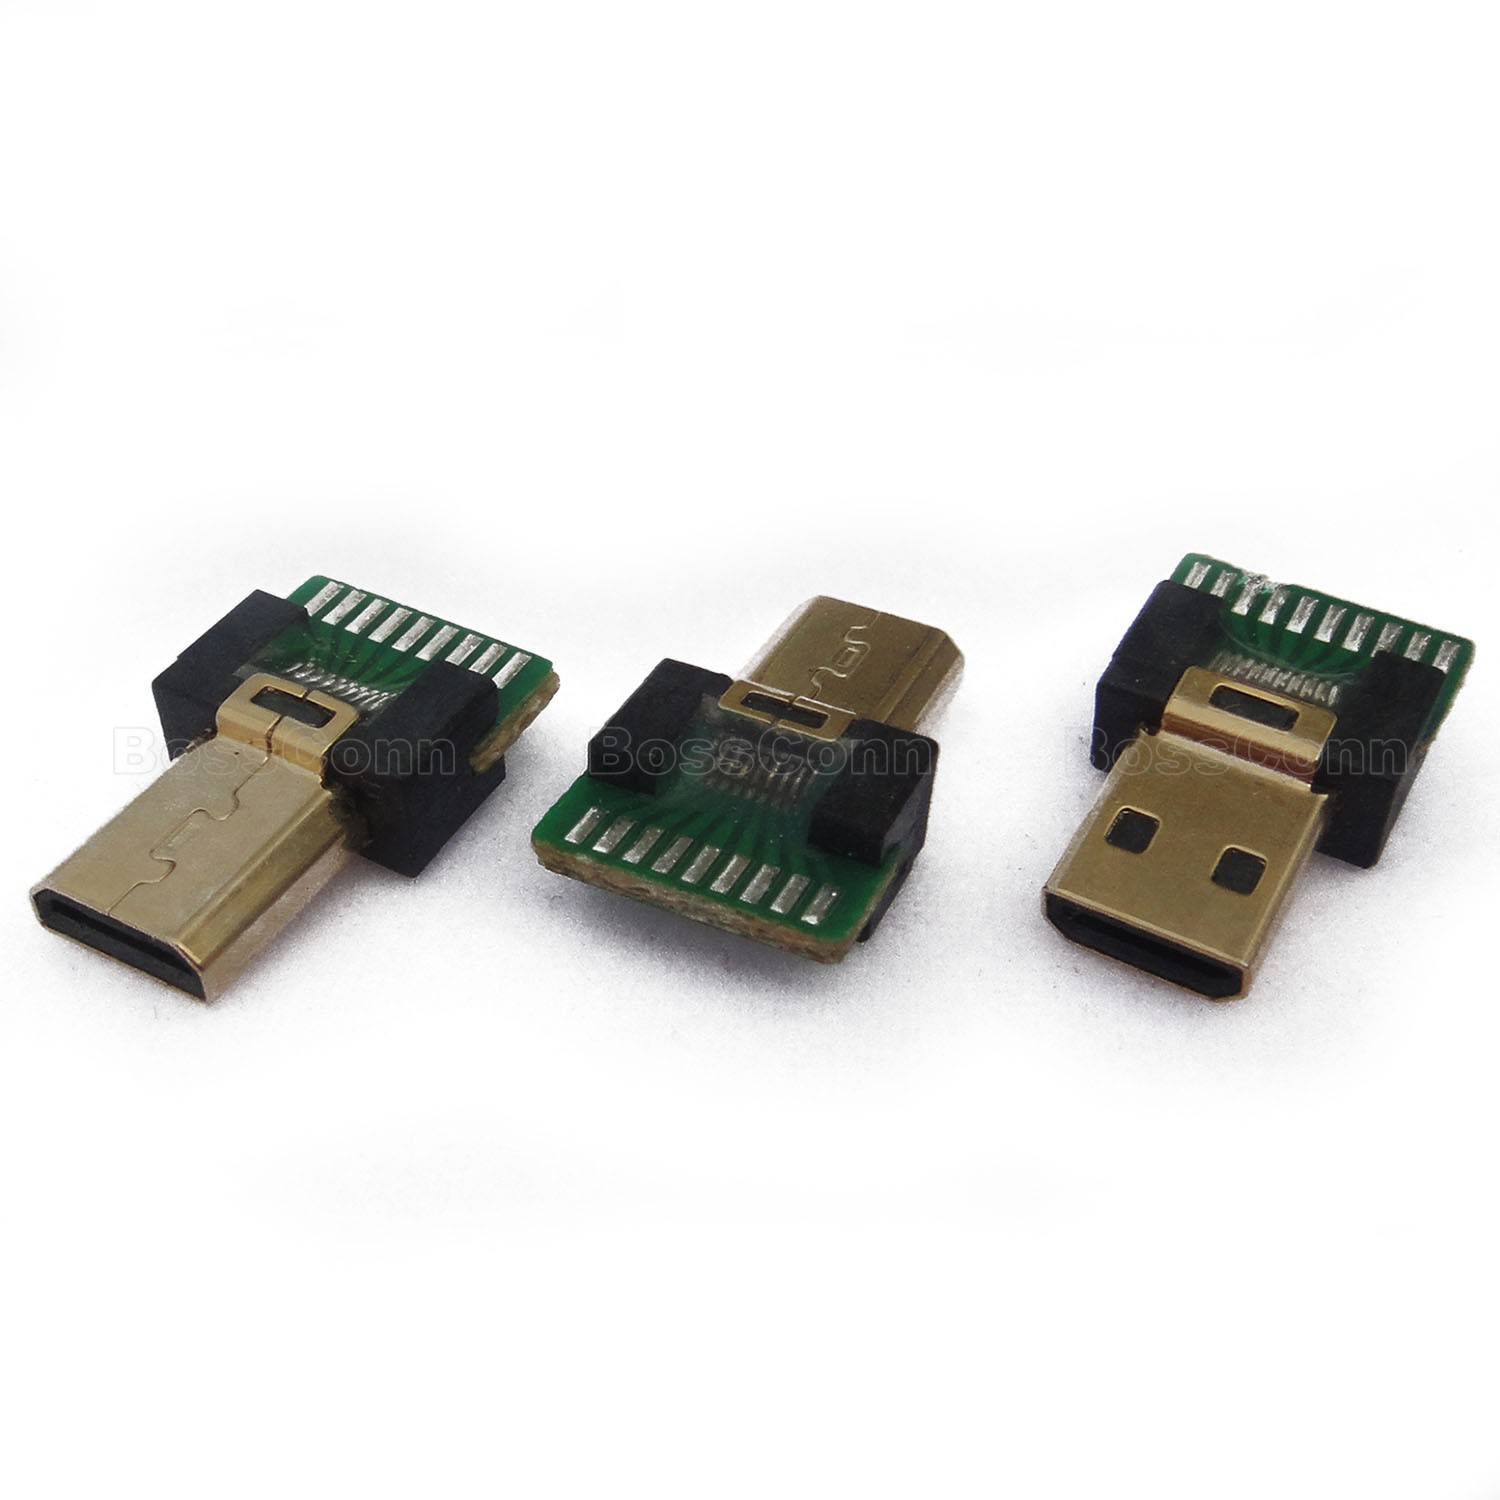 Micro hdmi male connector solder type with pcb